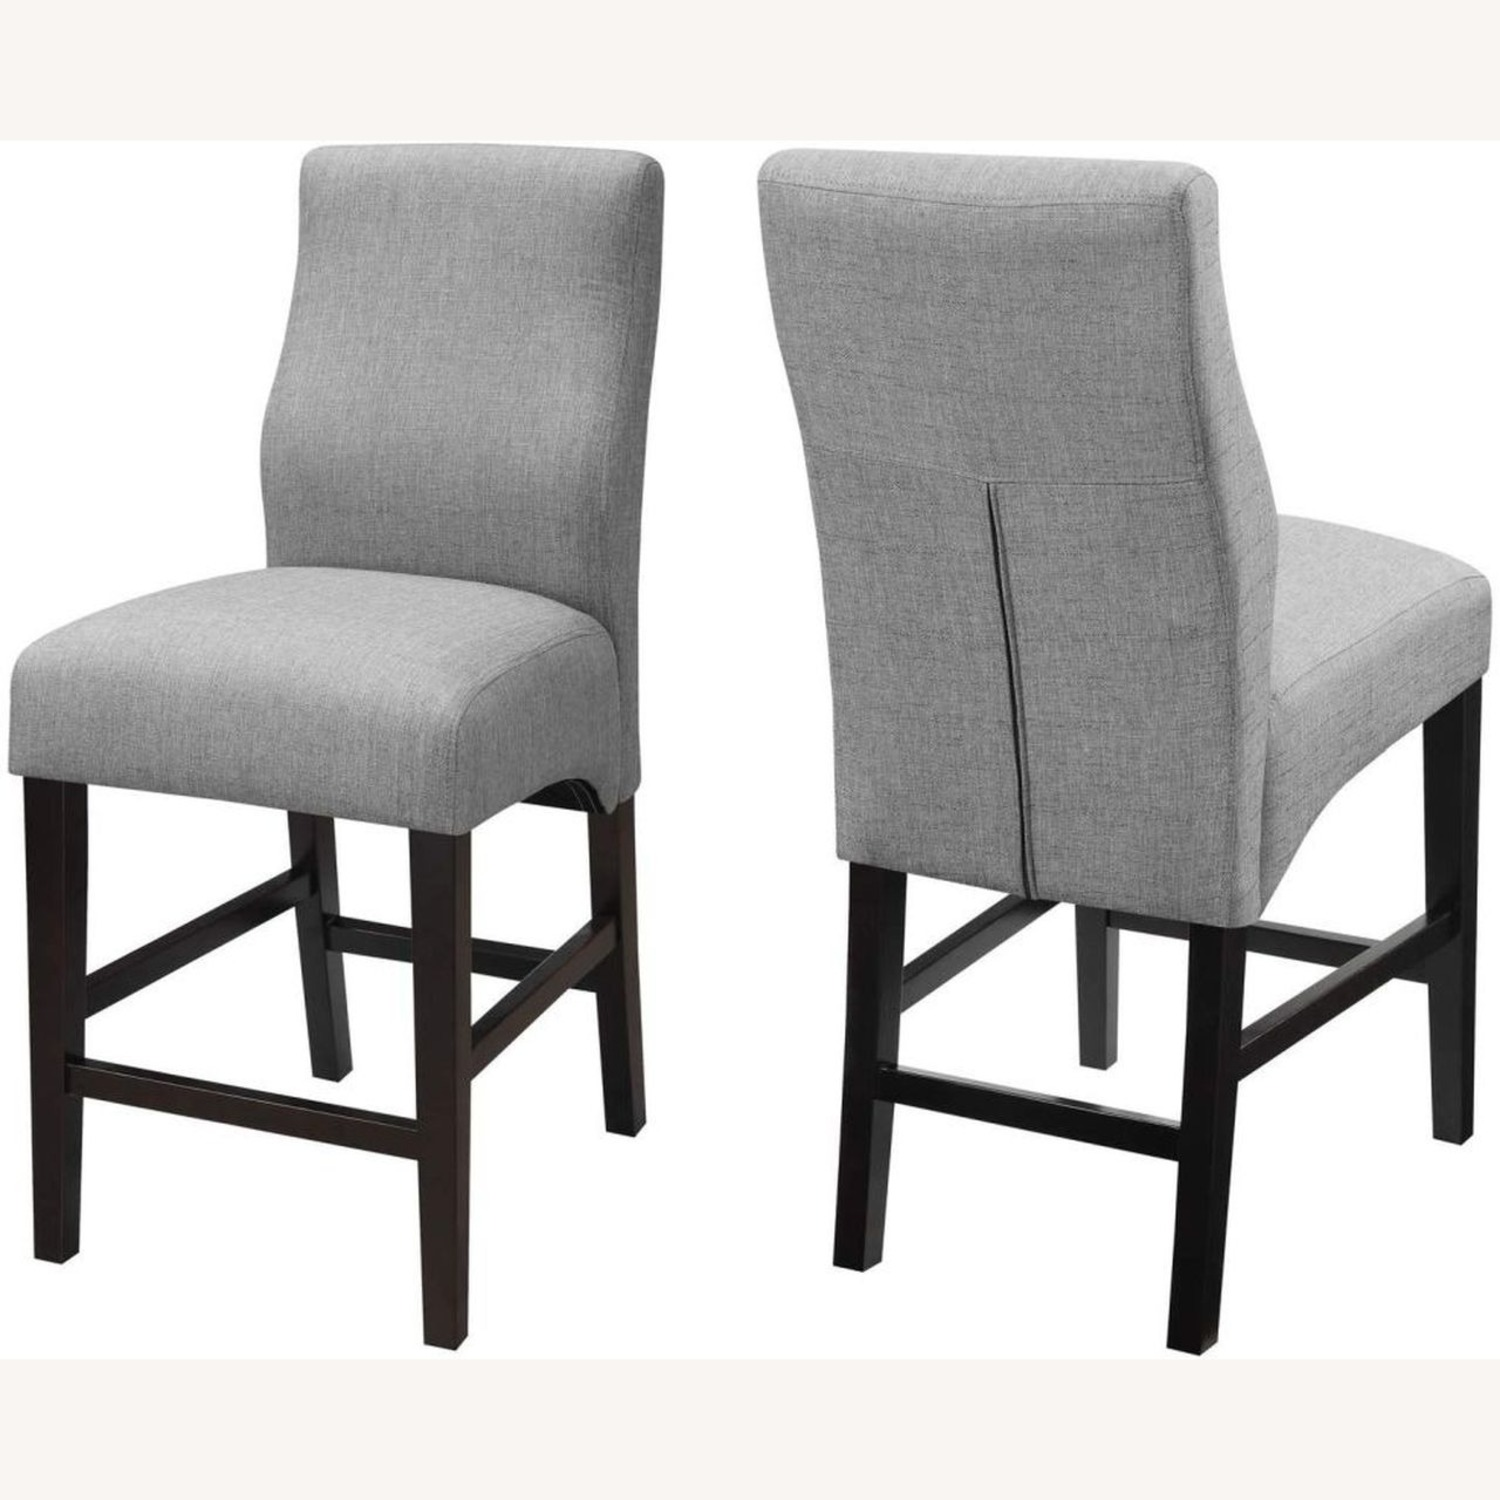 Counter Height Stool Upholstered In Grey Fabric - image-1